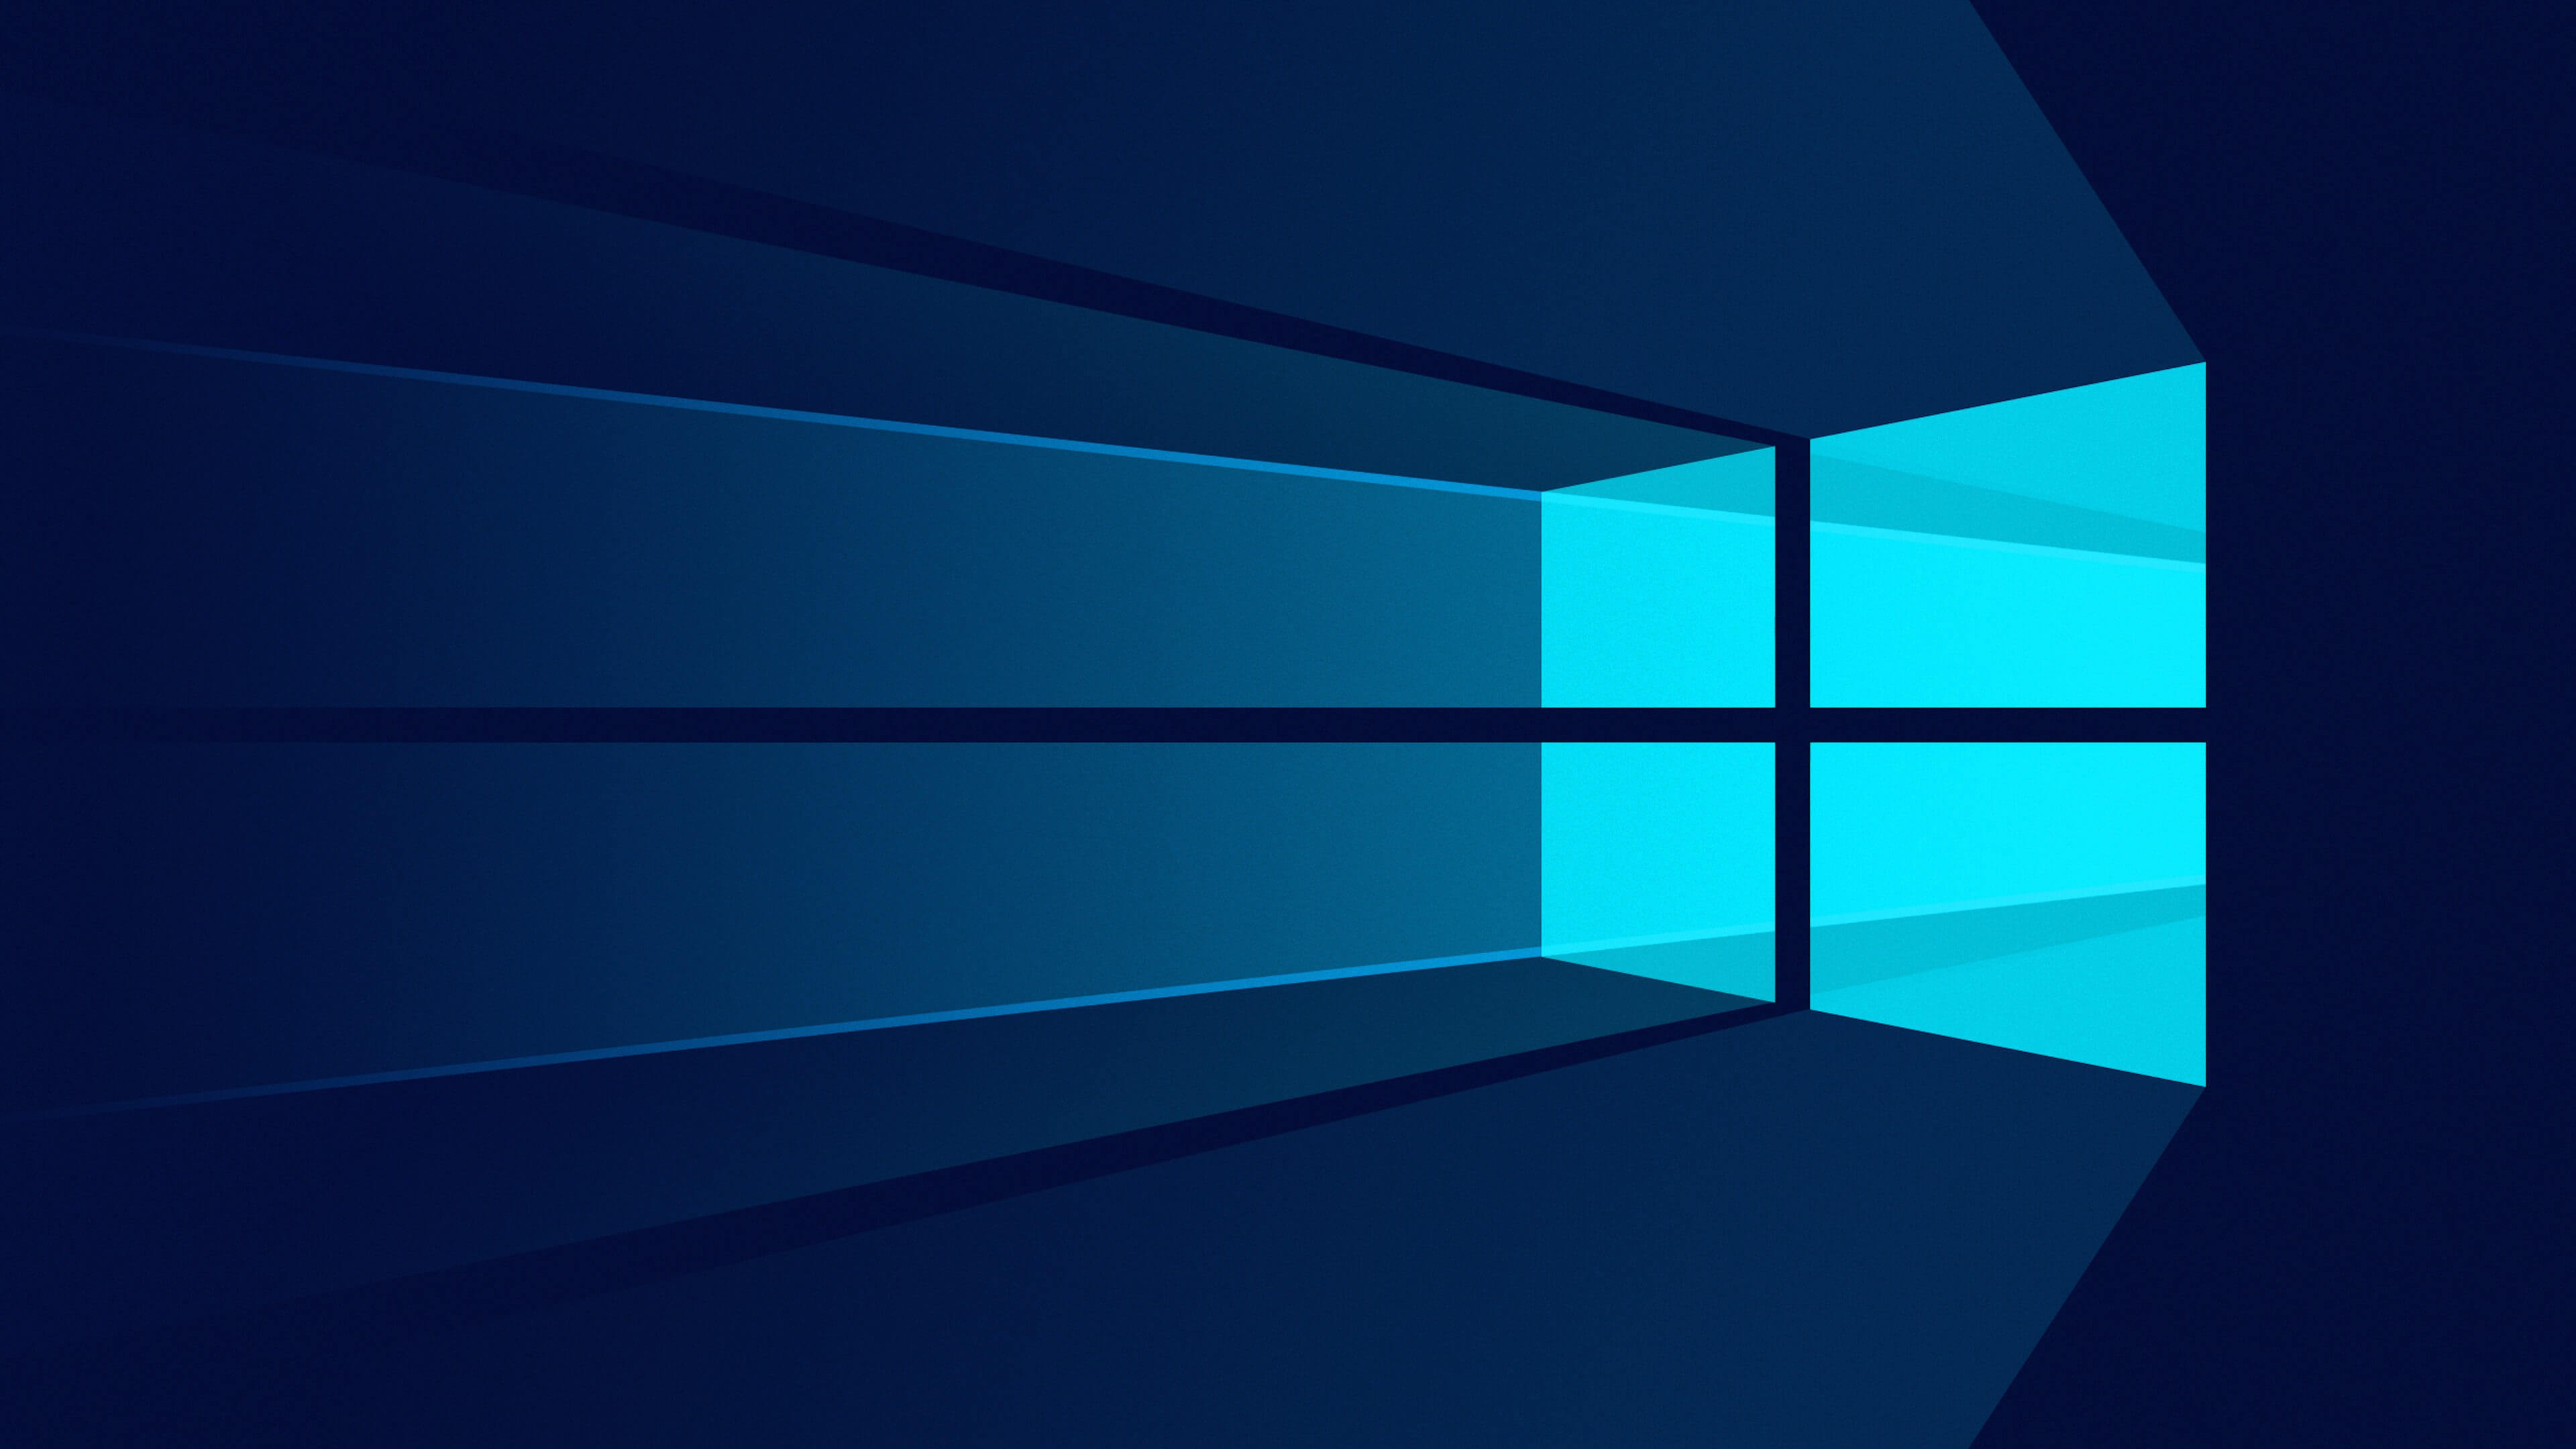 Flat wallpapers photos and desktop backgrounds up to 8k - Windows 10 4k wallpaper pack ...